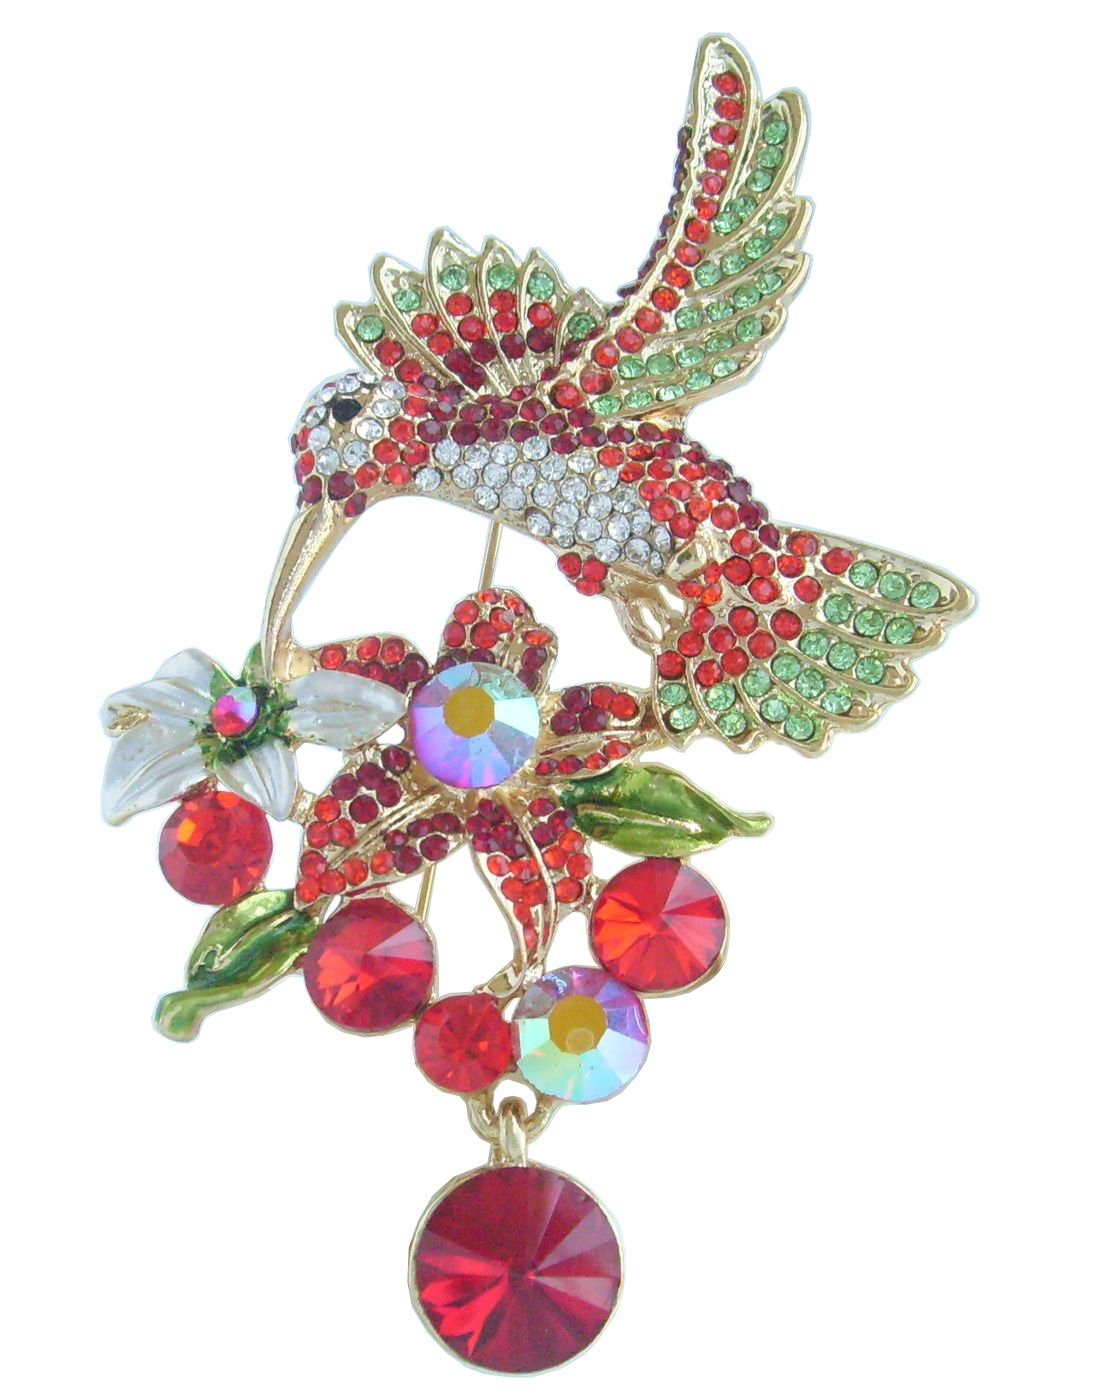 Sindary Pretty 3.54'' Animal Pendant Hummingbird Brooch Pin Rhinestone Crystal BZ6385 (Gold-Tone Red) by Animal Brooch-Sindary Jewelry (Image #1)